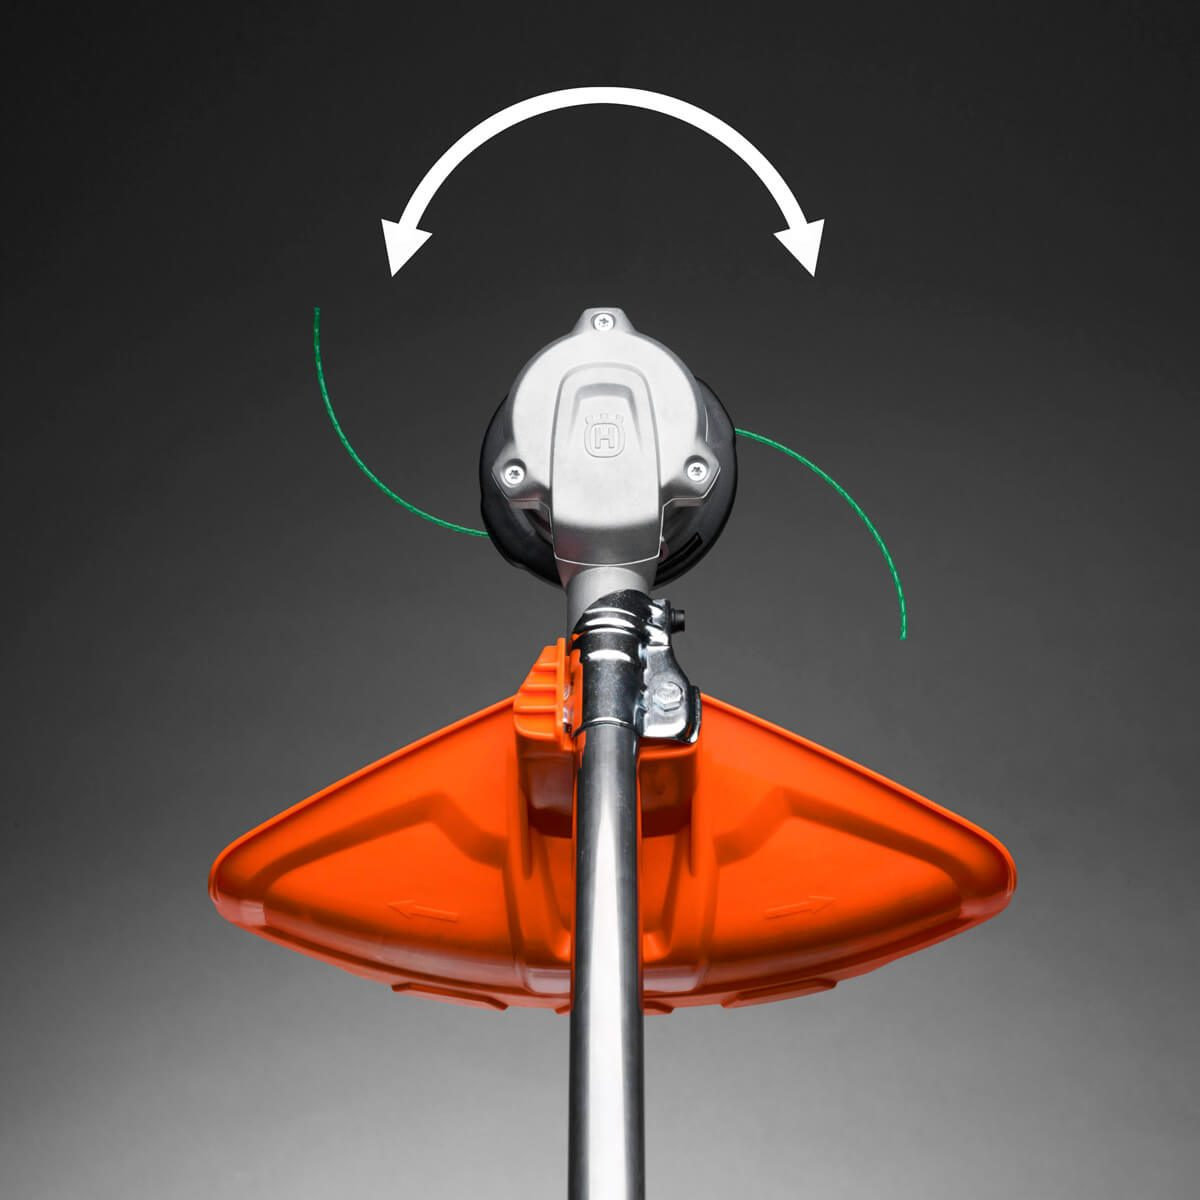 A String Trimmer With Two-way Rotation